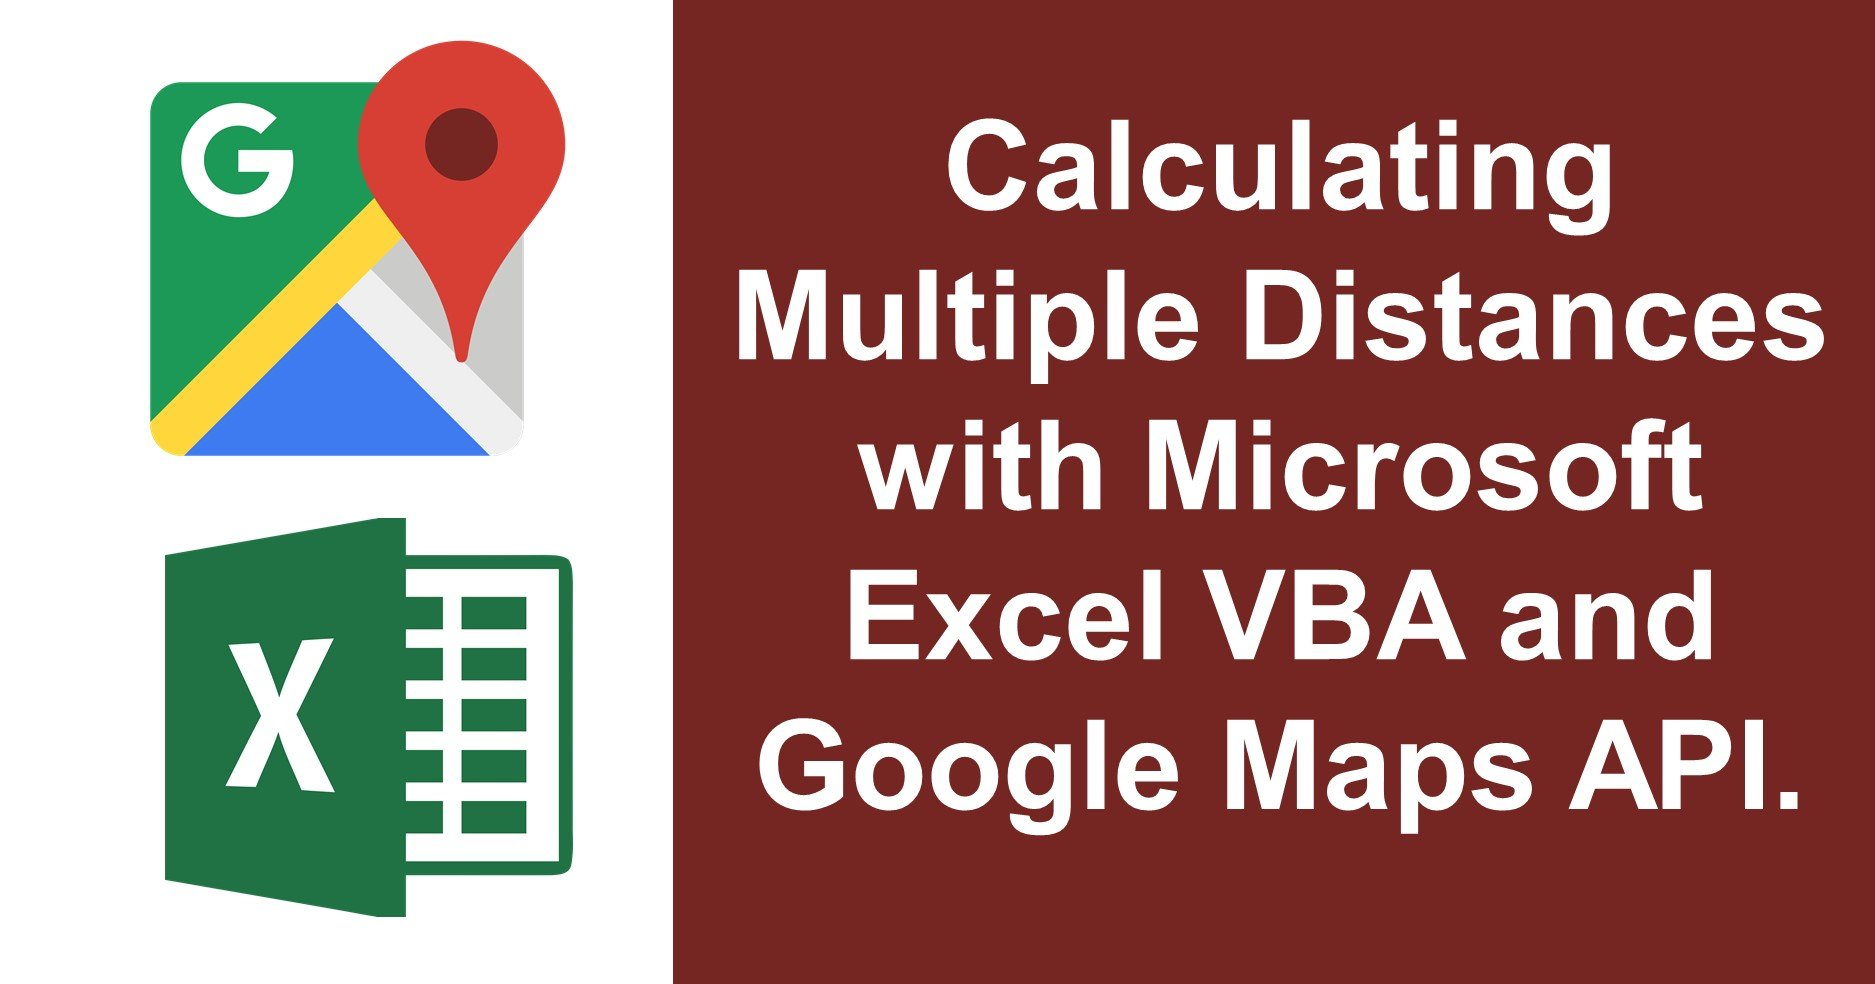 Updated: Microsoft Excel VBA and Google Maps to calculate distances